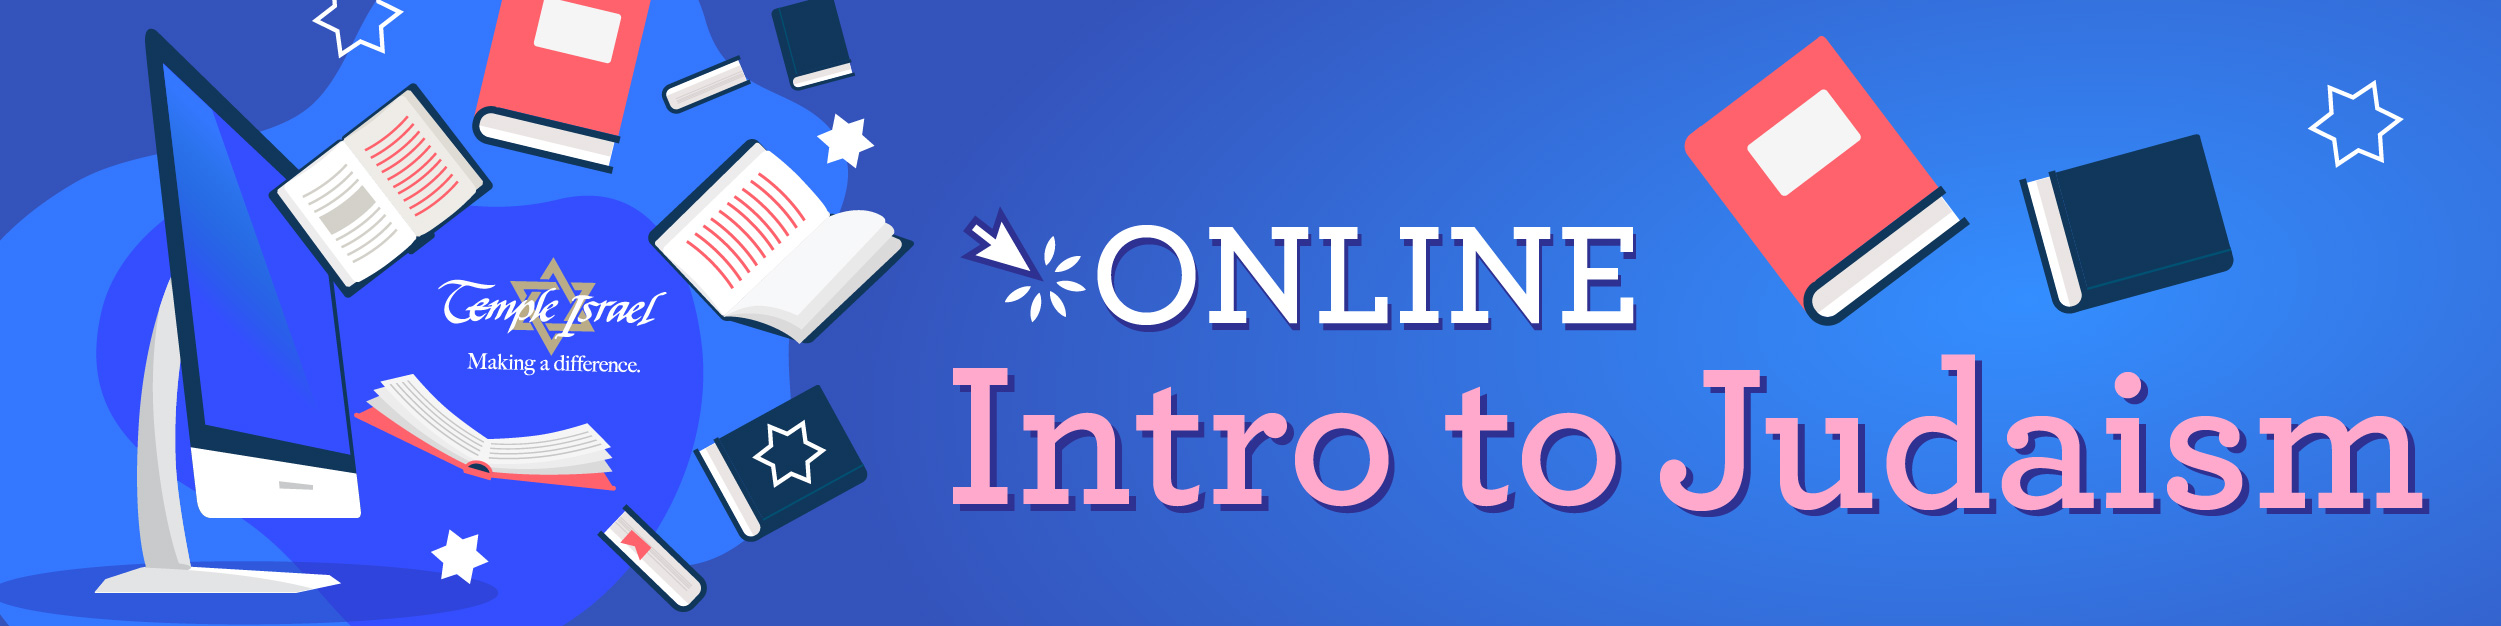 Banner Image for Intro to Judaism